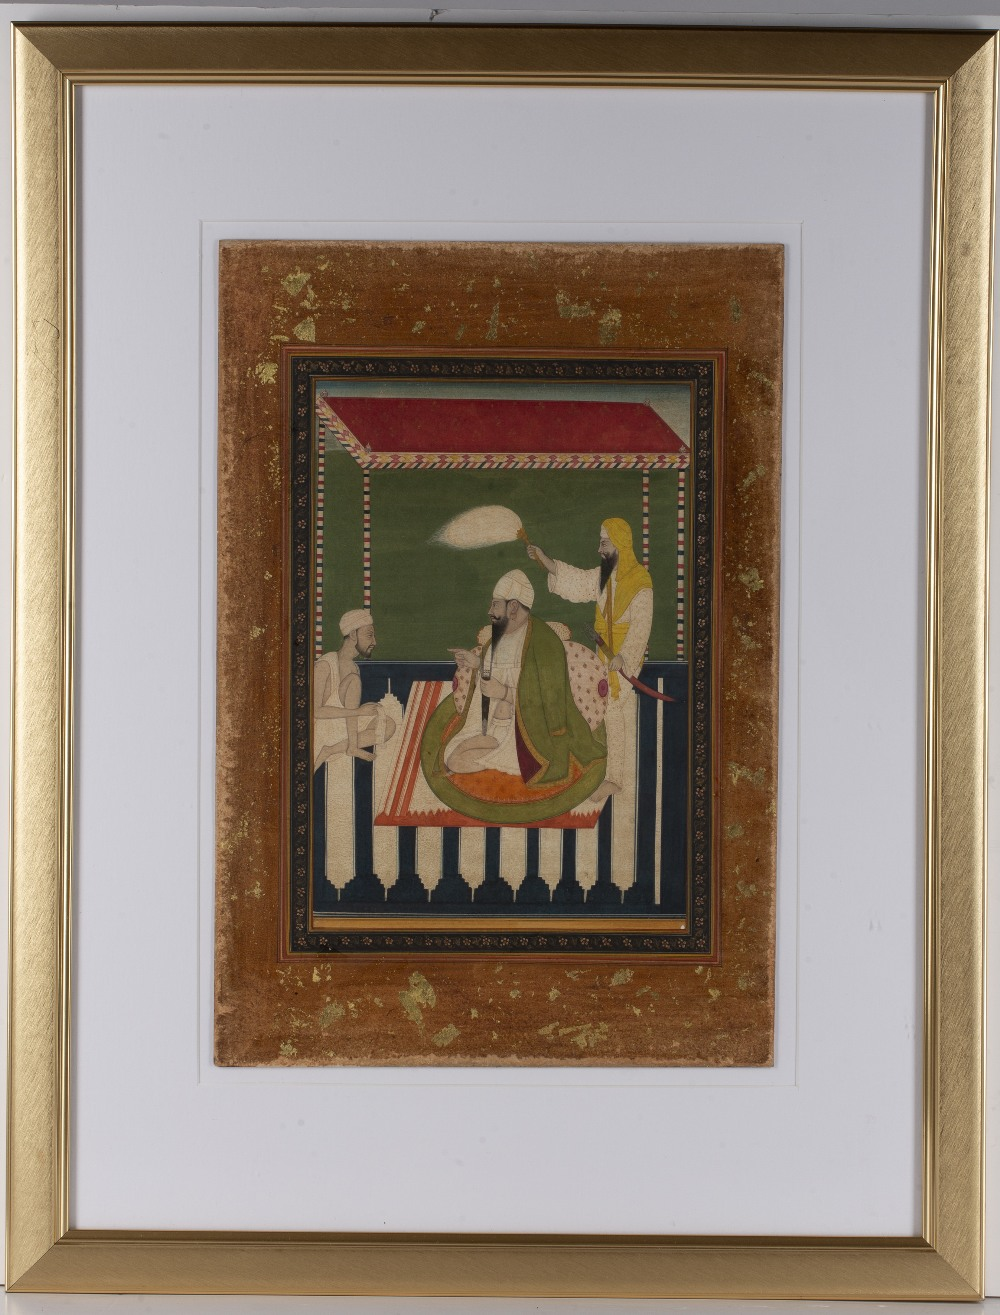 Seated figure miniature Indian, Sikh school depicting two attendants with a seated figure, with a - Image 2 of 3